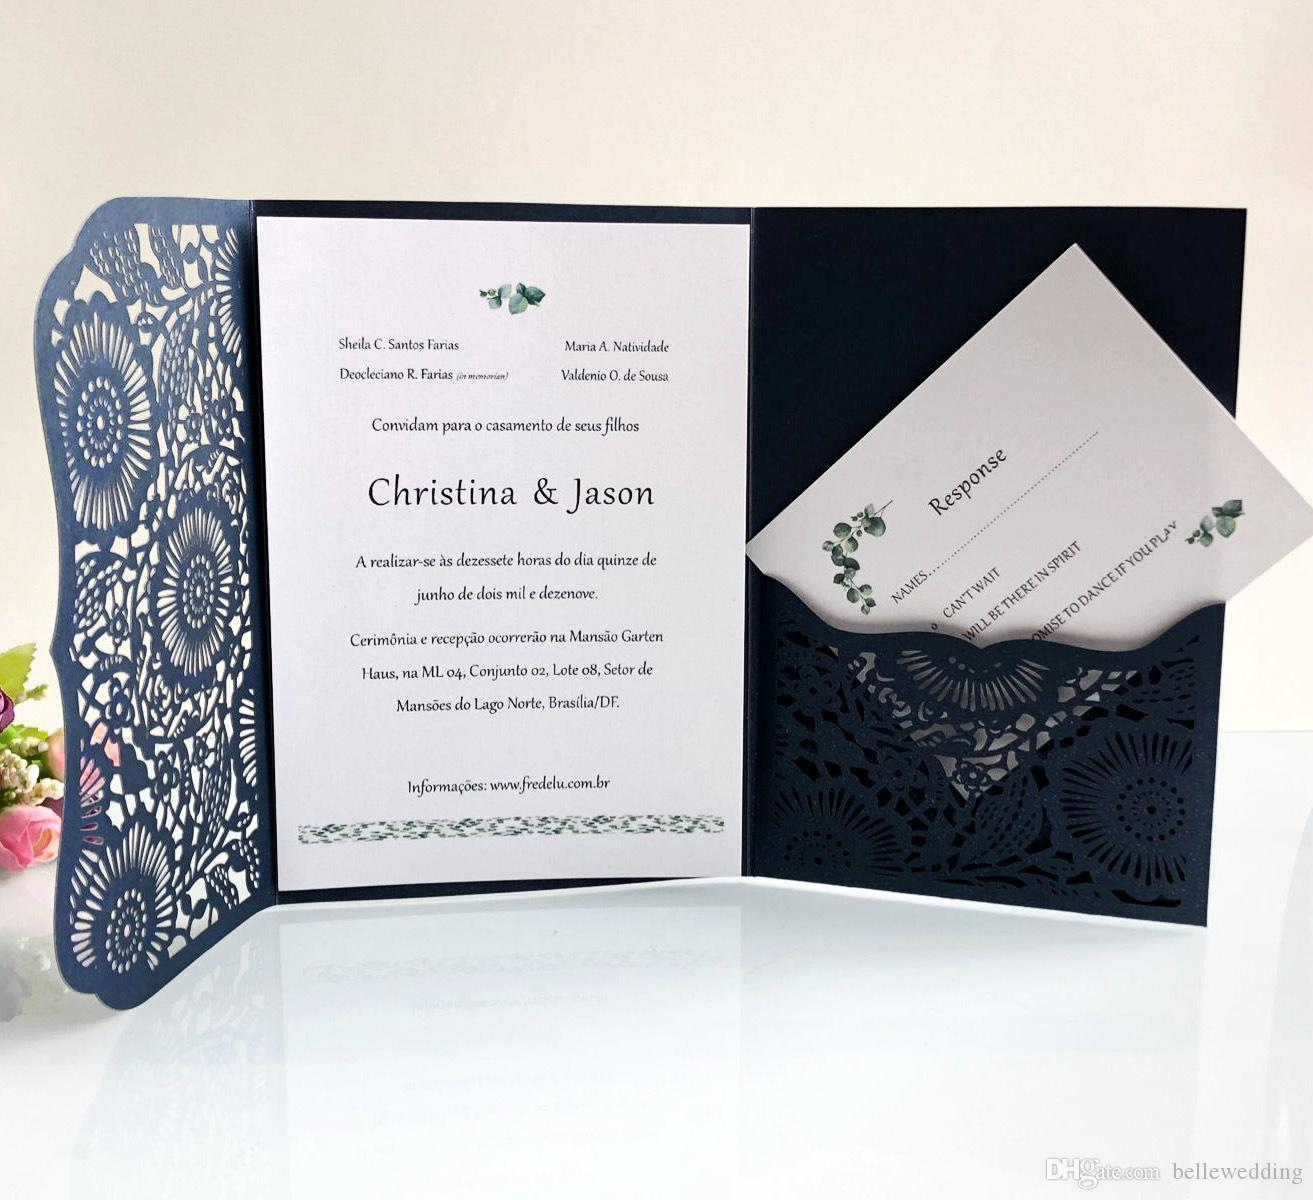 Personalized Wedding Invitations.Laser Cut Wedding Invitations Oem In 41 Colors Customized Hollow Folding Personalized Wedding Invitation Cards Bw Hk168